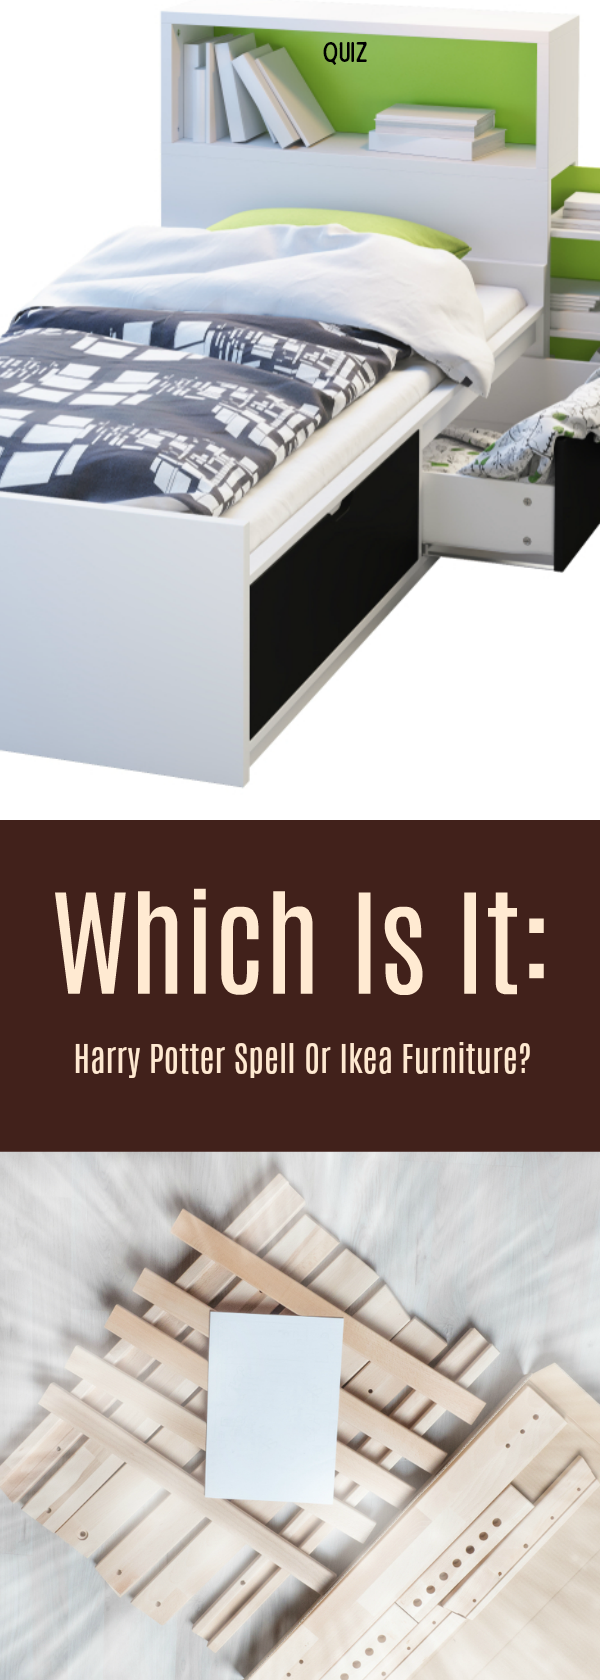 Which Is It Harry Potter Spell Or Ikea Furniture Quiz Stuff